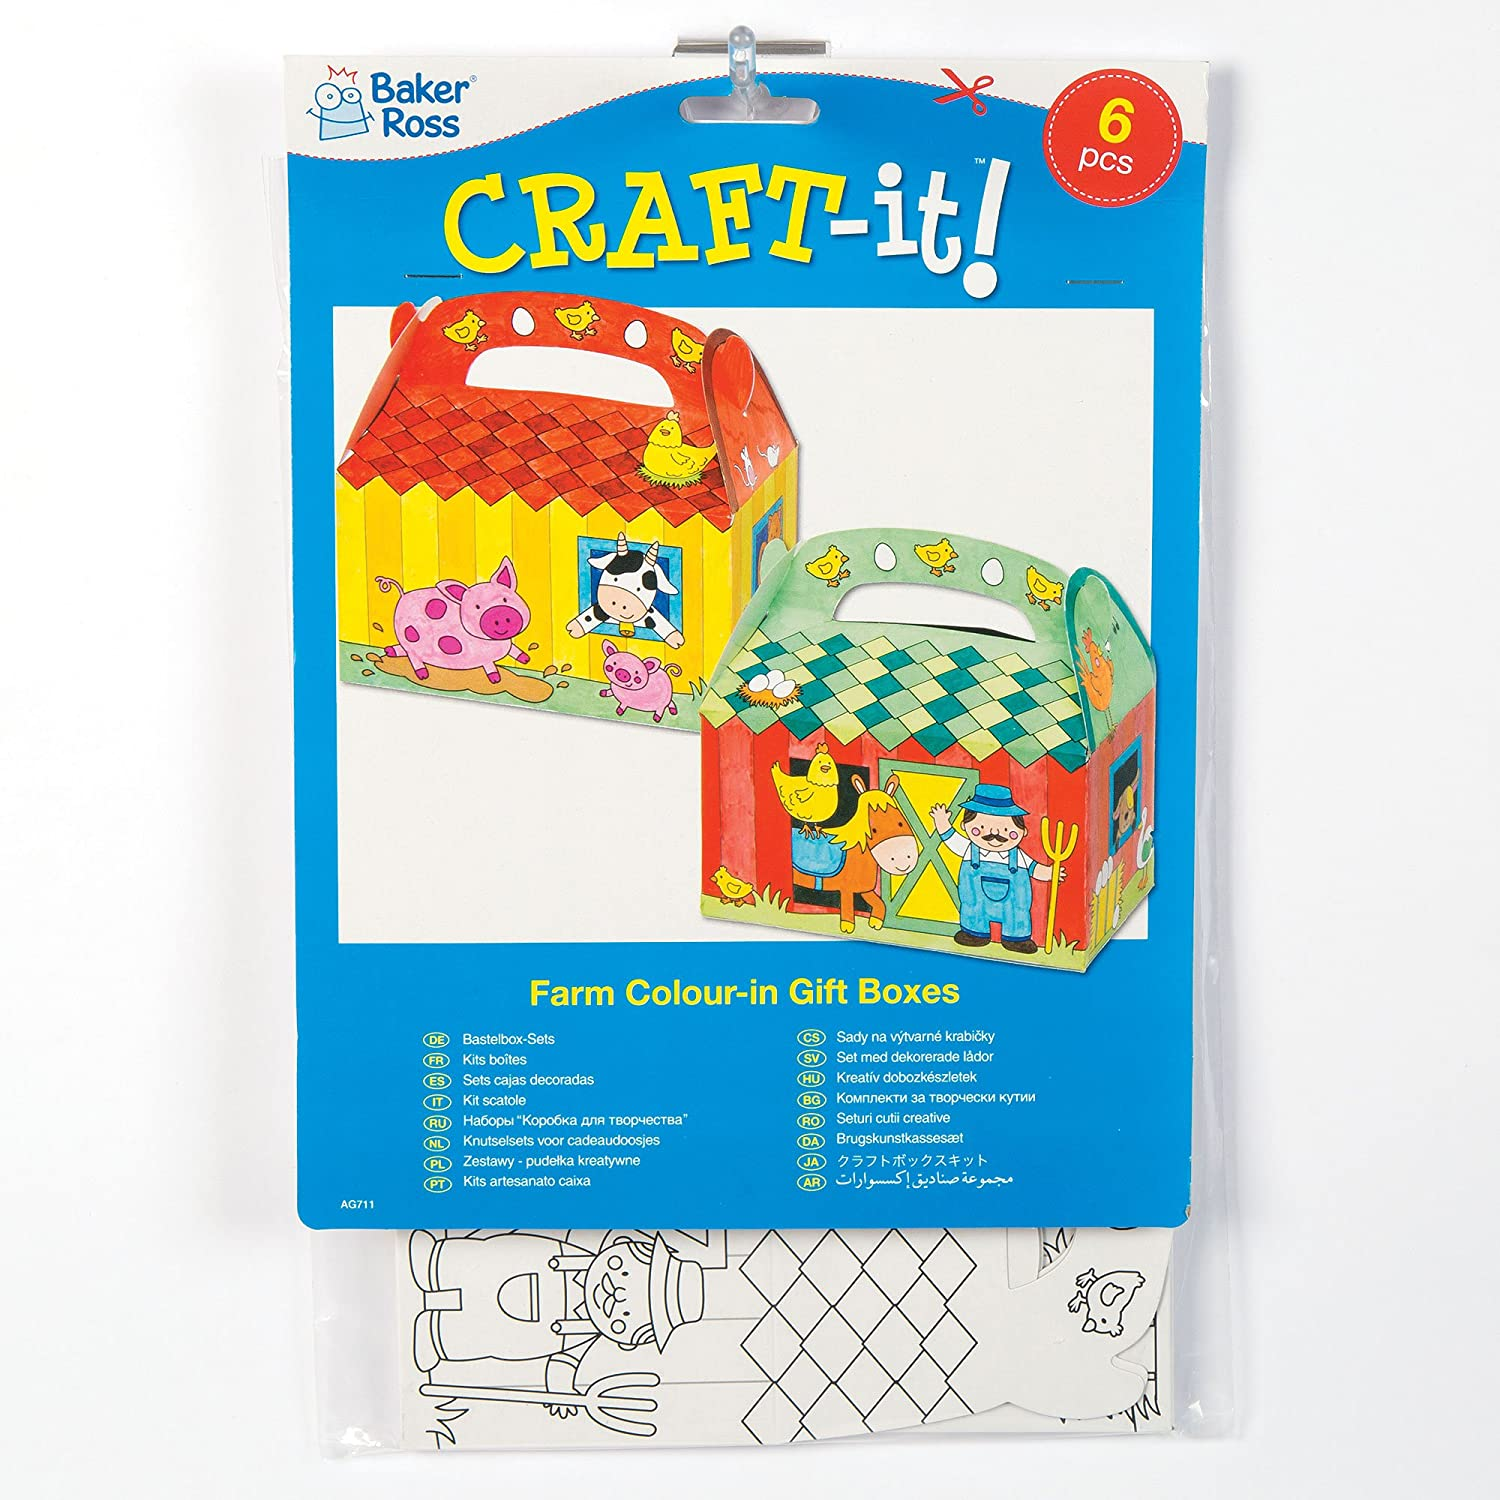 Amazon.com: Farm Color-in Card Gift Boxes for Children to Assemble Colour-in and Decorate (Pack of 6): Toys & Games